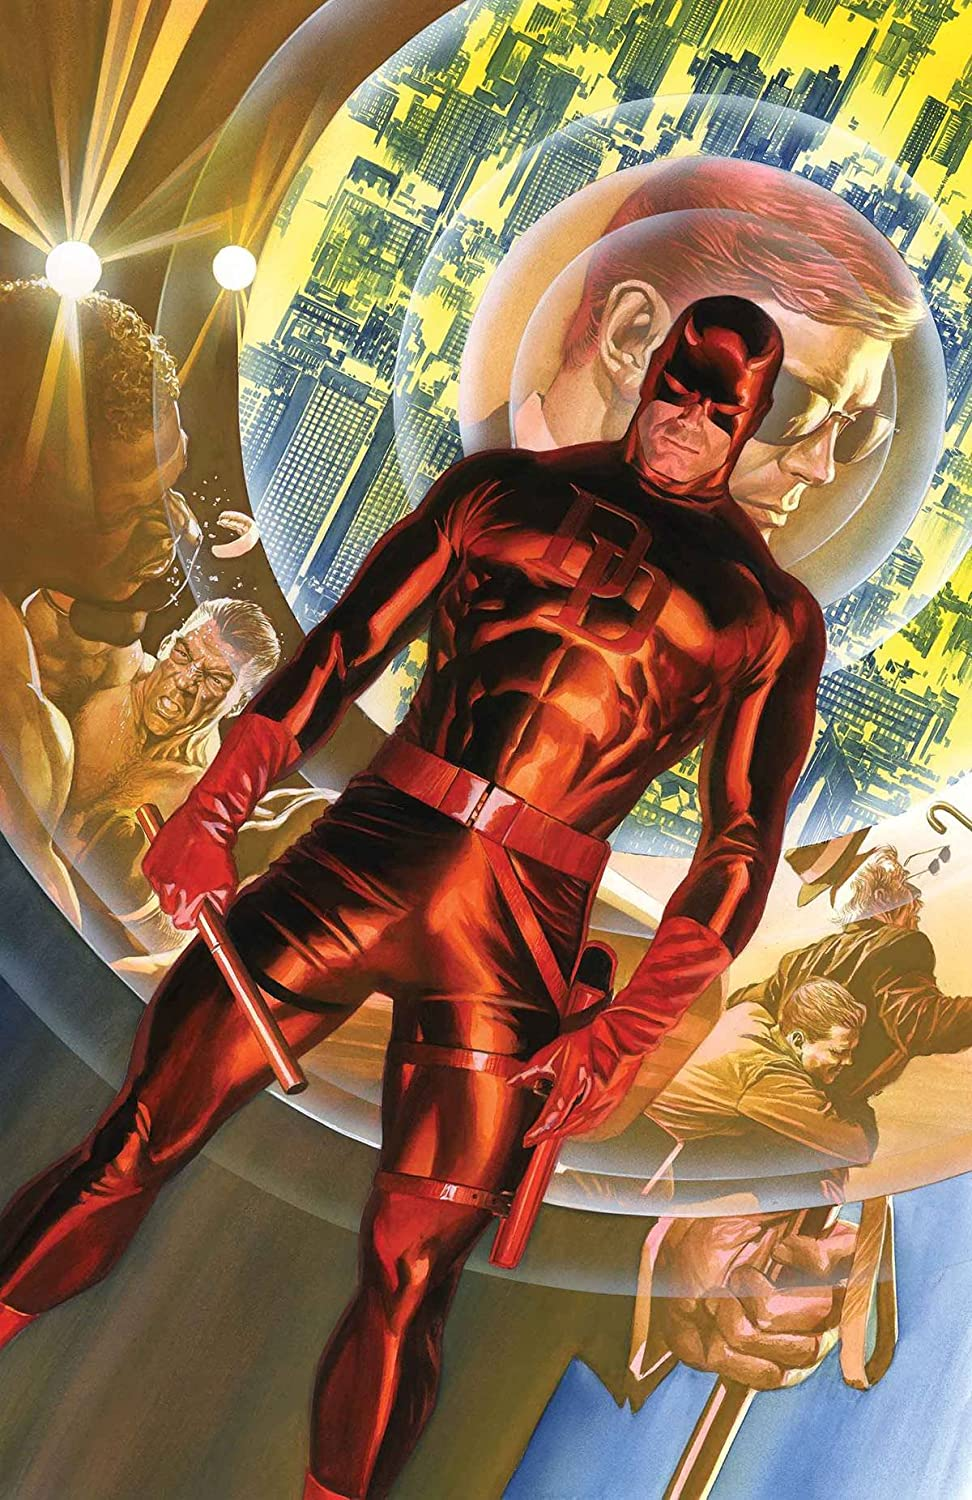 Amazon.com : Marvel Comics Daredevil #1 75th Anniversary 24 X 36 Rolled Poster By Alex Ross : Everything Else